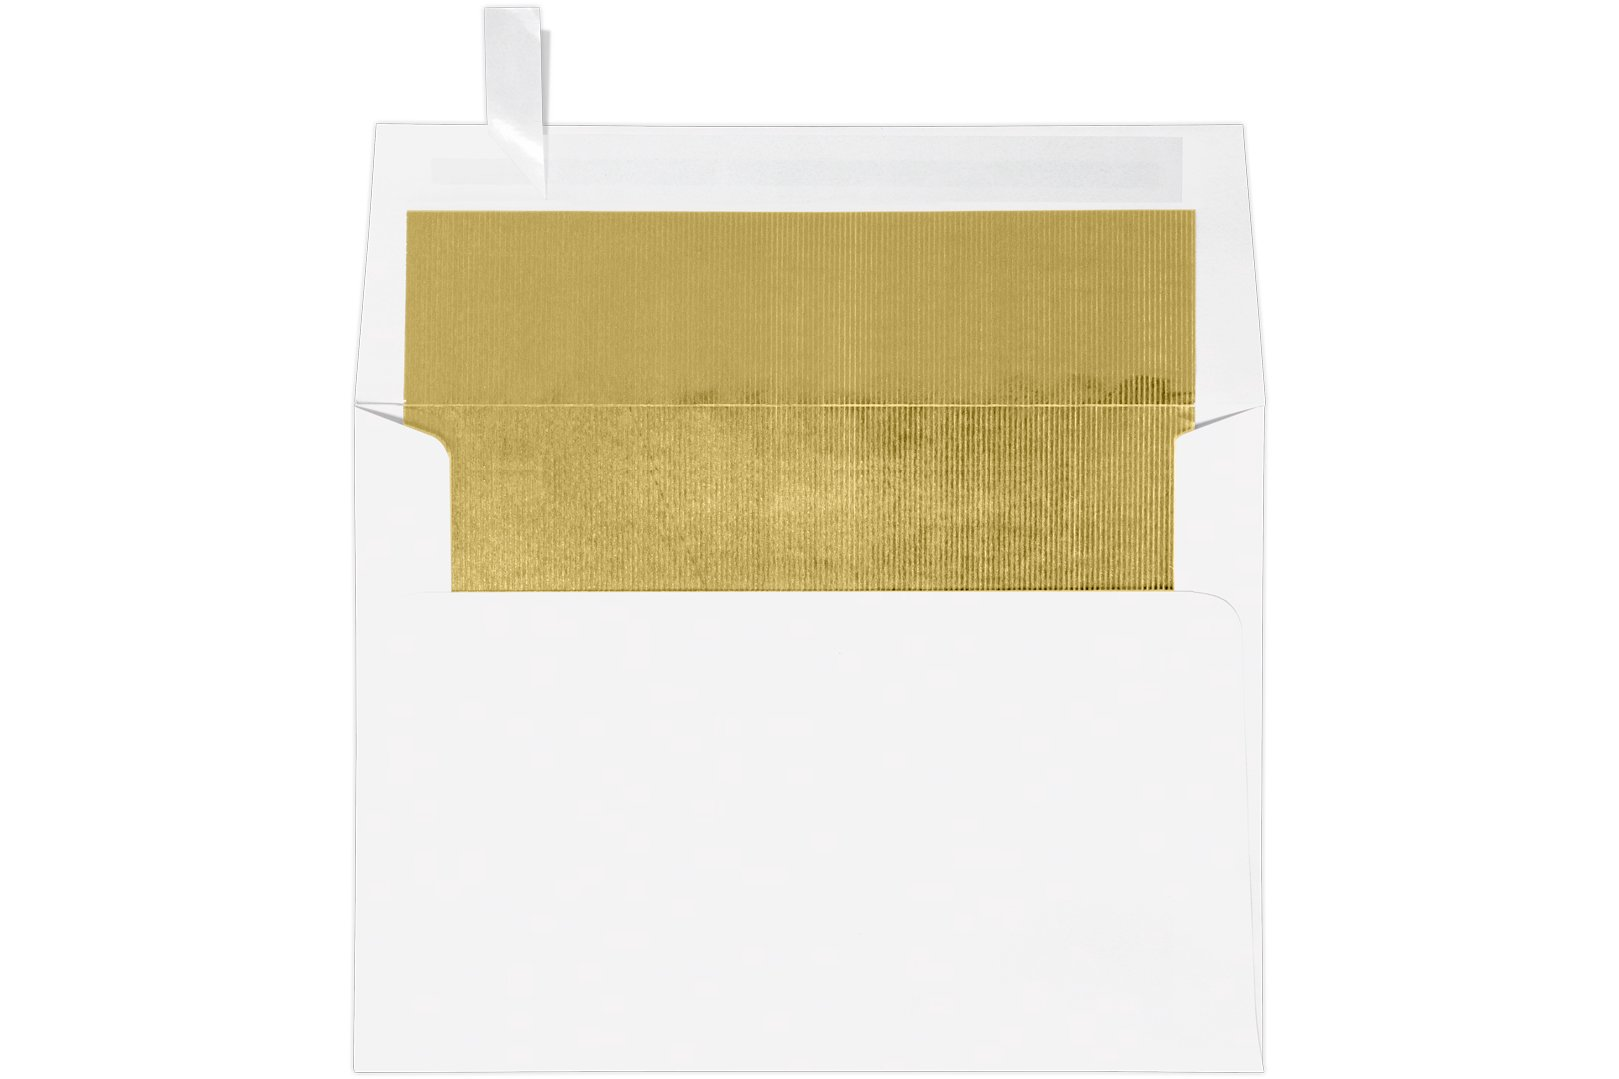 A7 Foil Lined Invitation Envelopes (5 1/4 x 7 1/4) w/Peel & Press - White w/Gold LUX Lining (1000 Qty.) | Perfect for the HOLIDAYS, 5x7 Photos, Invitations, Greeting Cards and More! |FLWH4880-04-1M